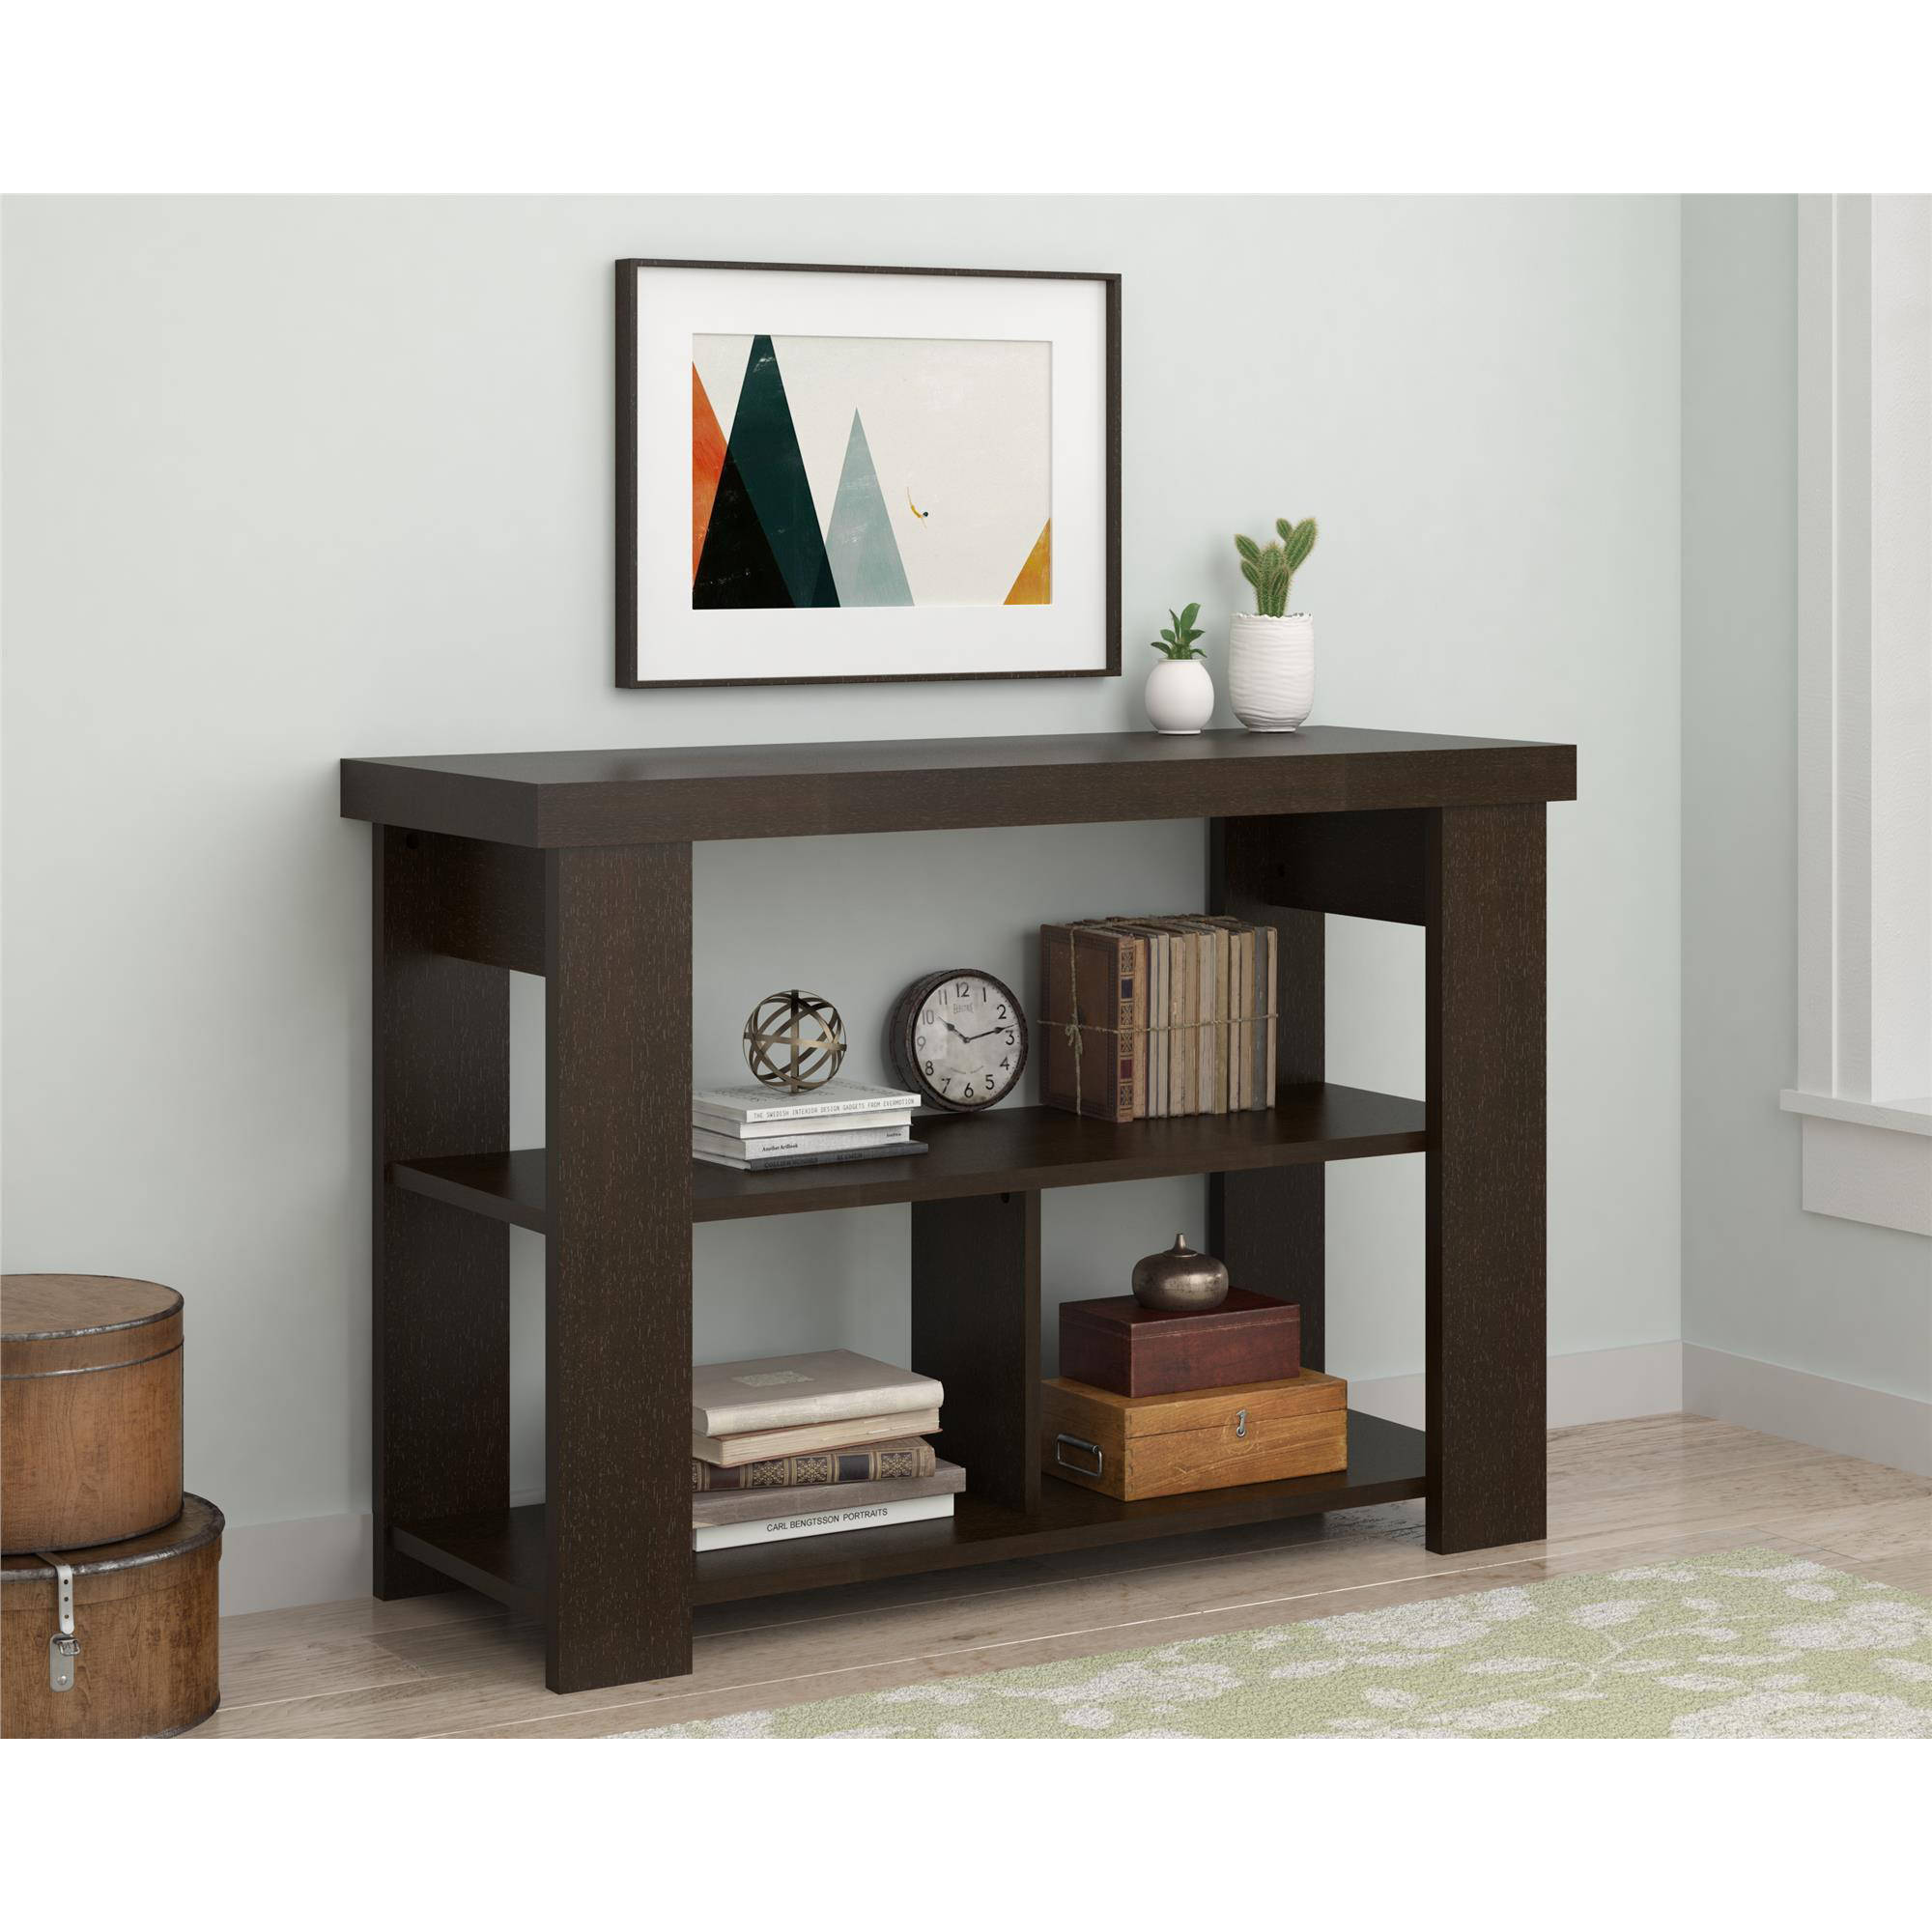 Larkin Sofa Table by Ameriwood, Multiple Finishes